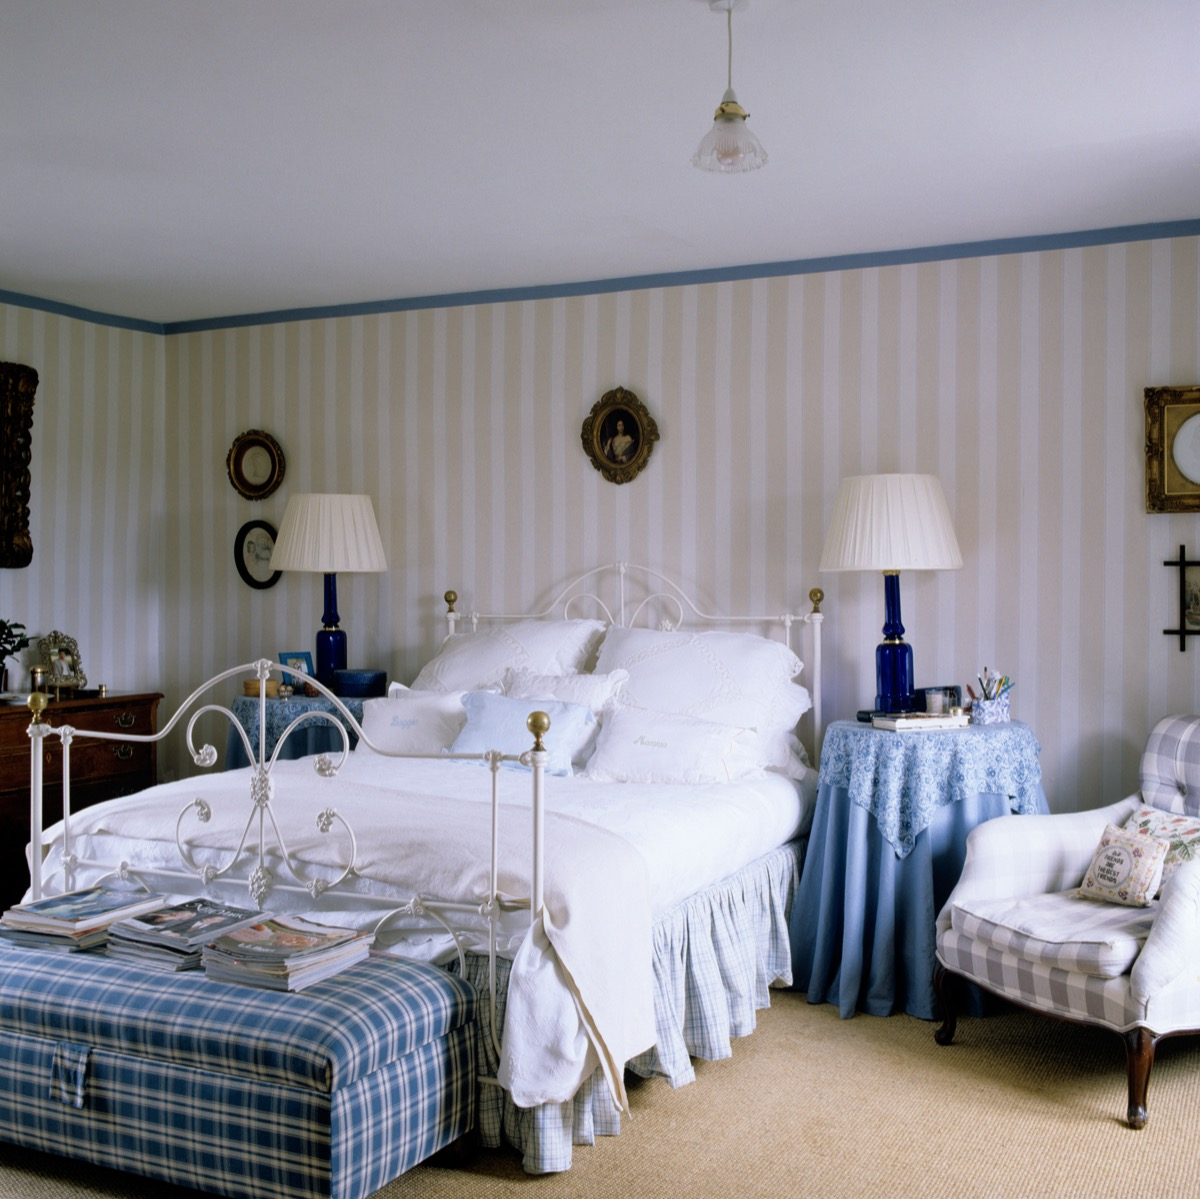 Country Bedroom with Bed Skirt 1990s Home Decor